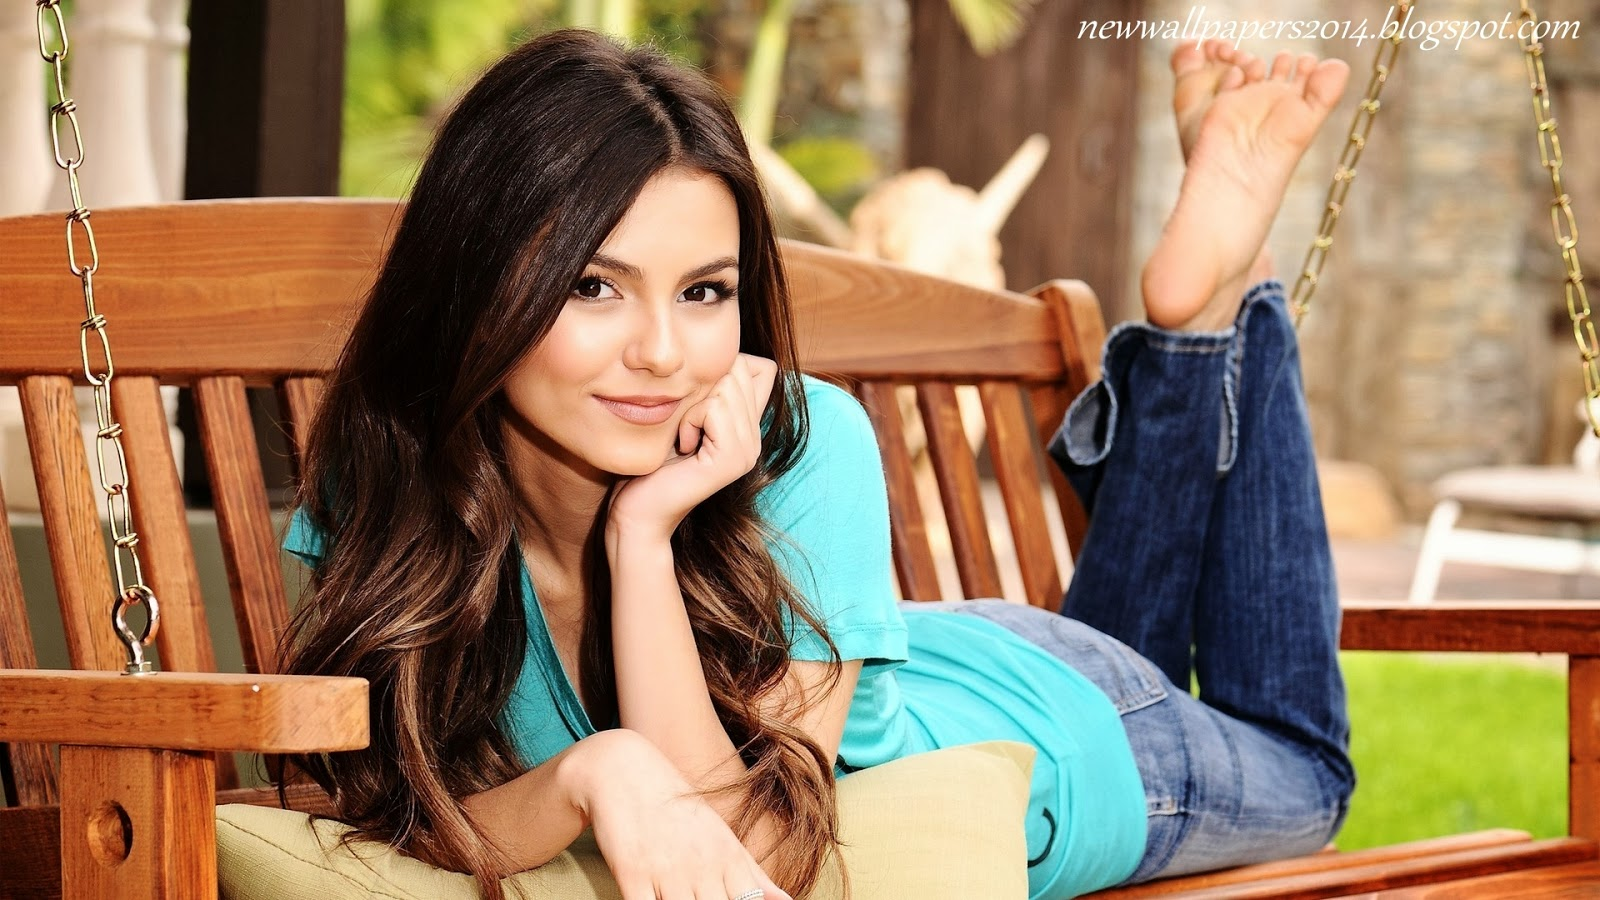 Victoria Justice Wallpapers   Victoria Justice Wallpapers 2014   Hd 1600x900